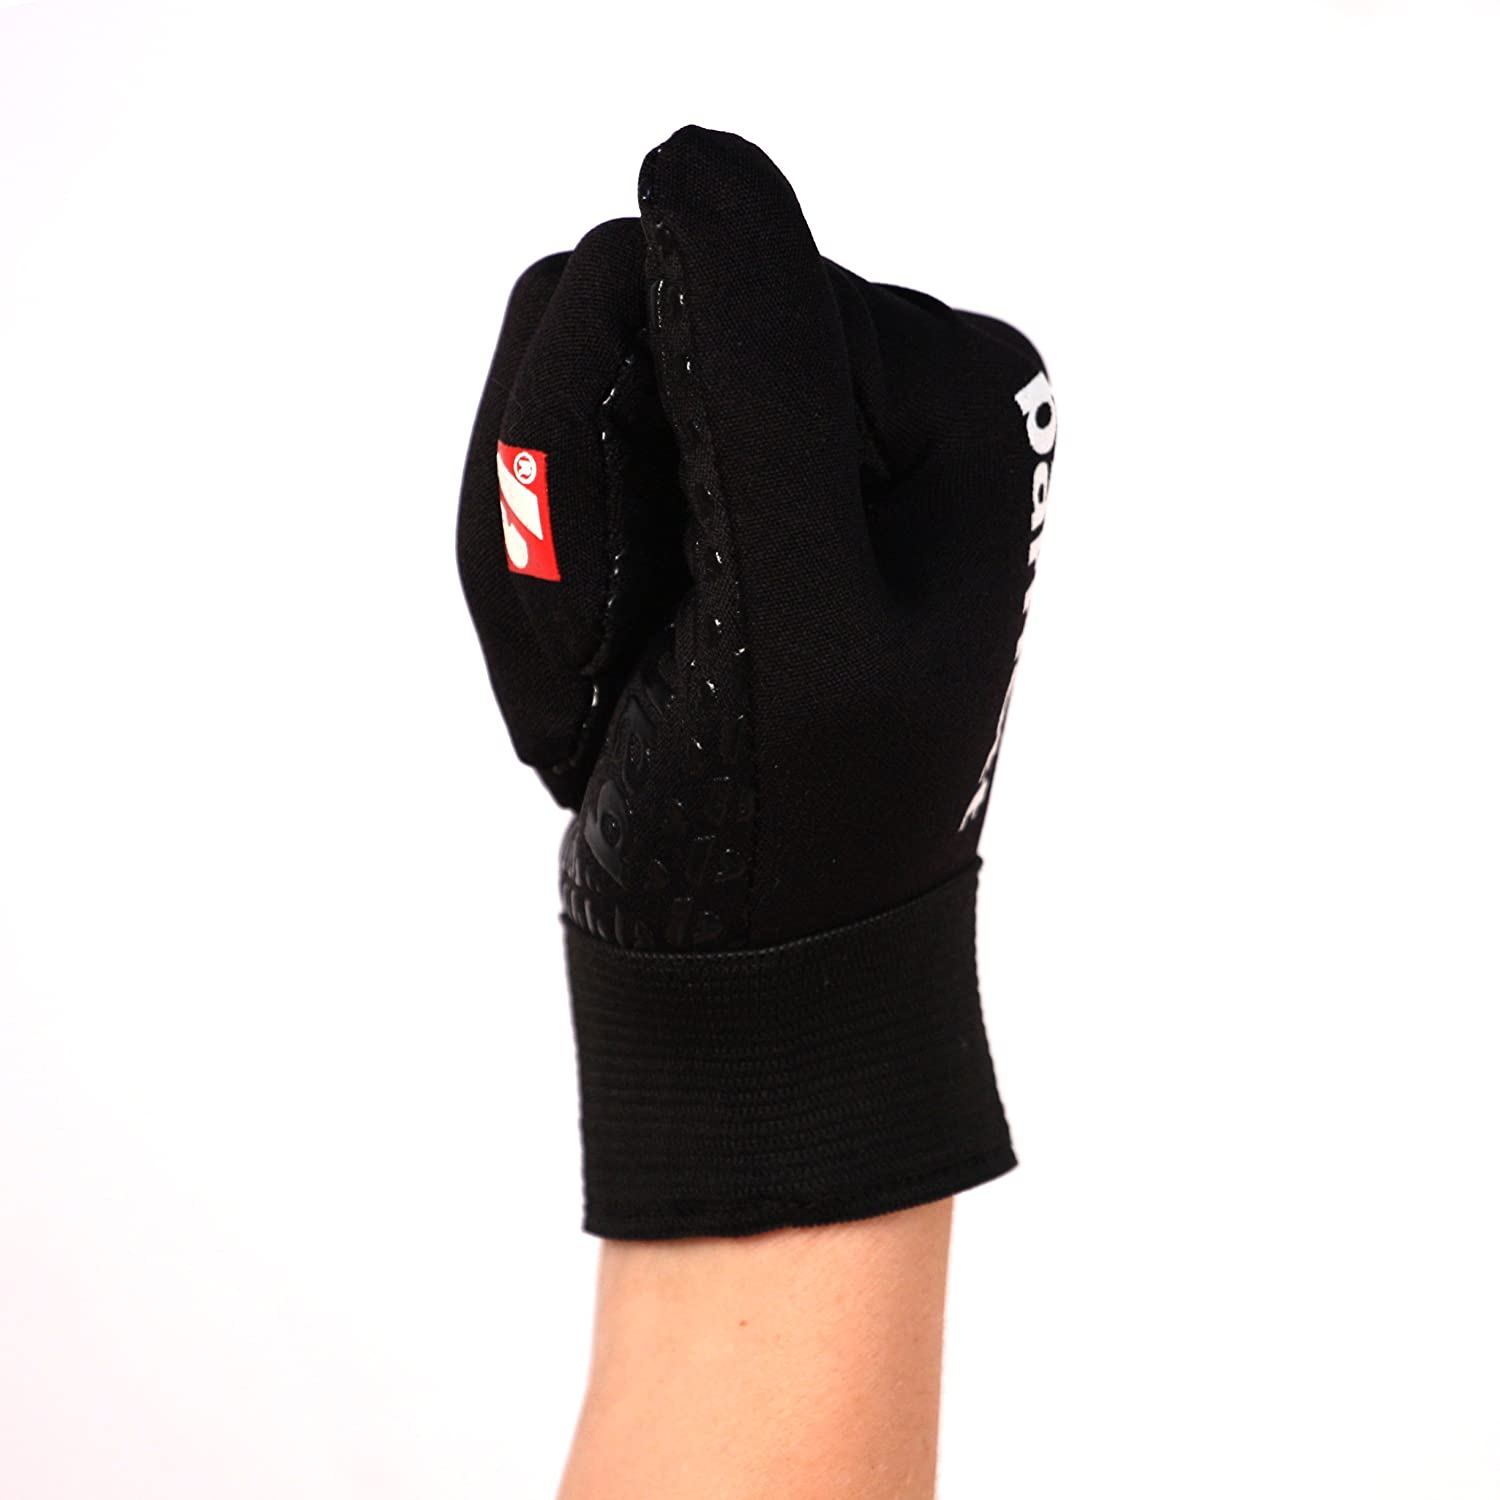 RE,DB,RB FLGL-02 American Football Handschuhe Running Schwarz barnett M